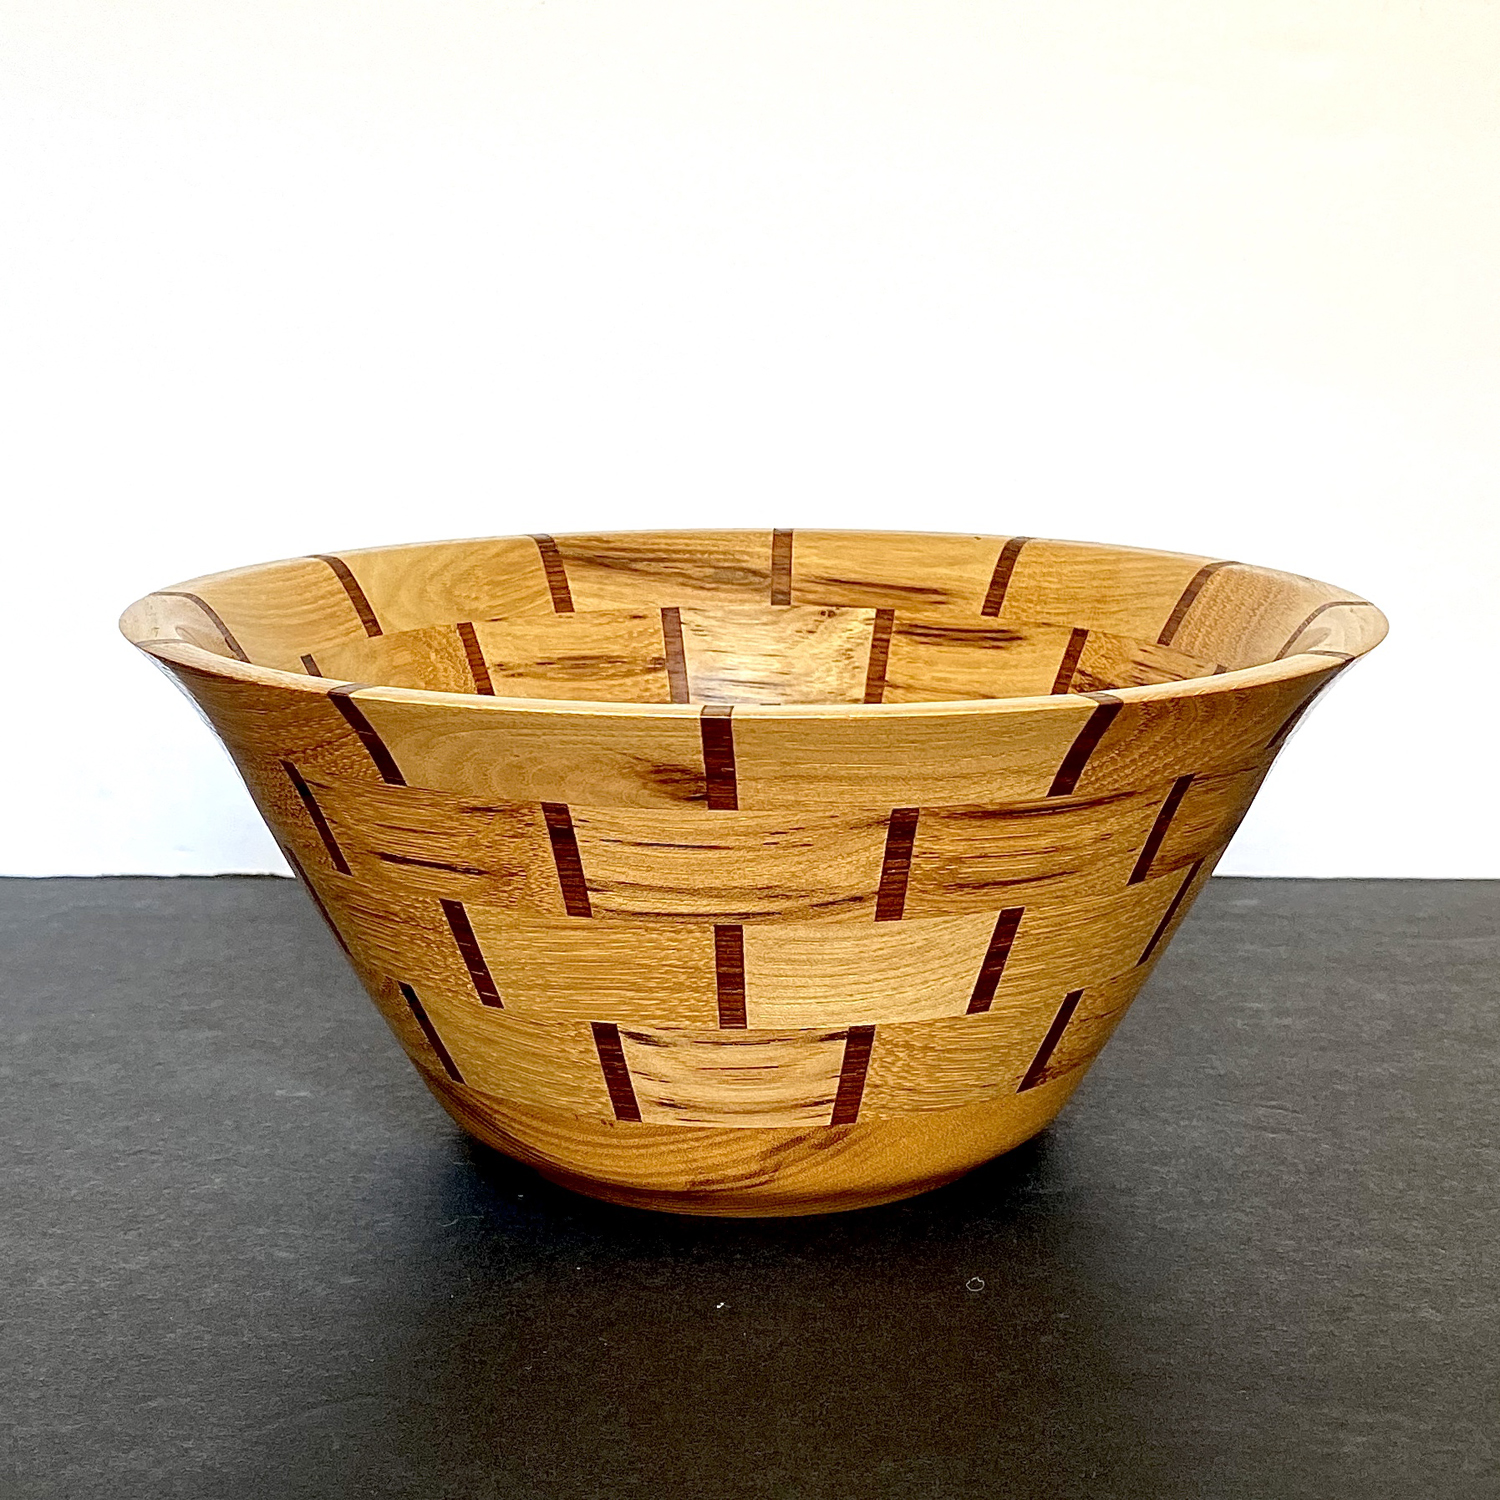 Small Segmented Bowl - John Cargill